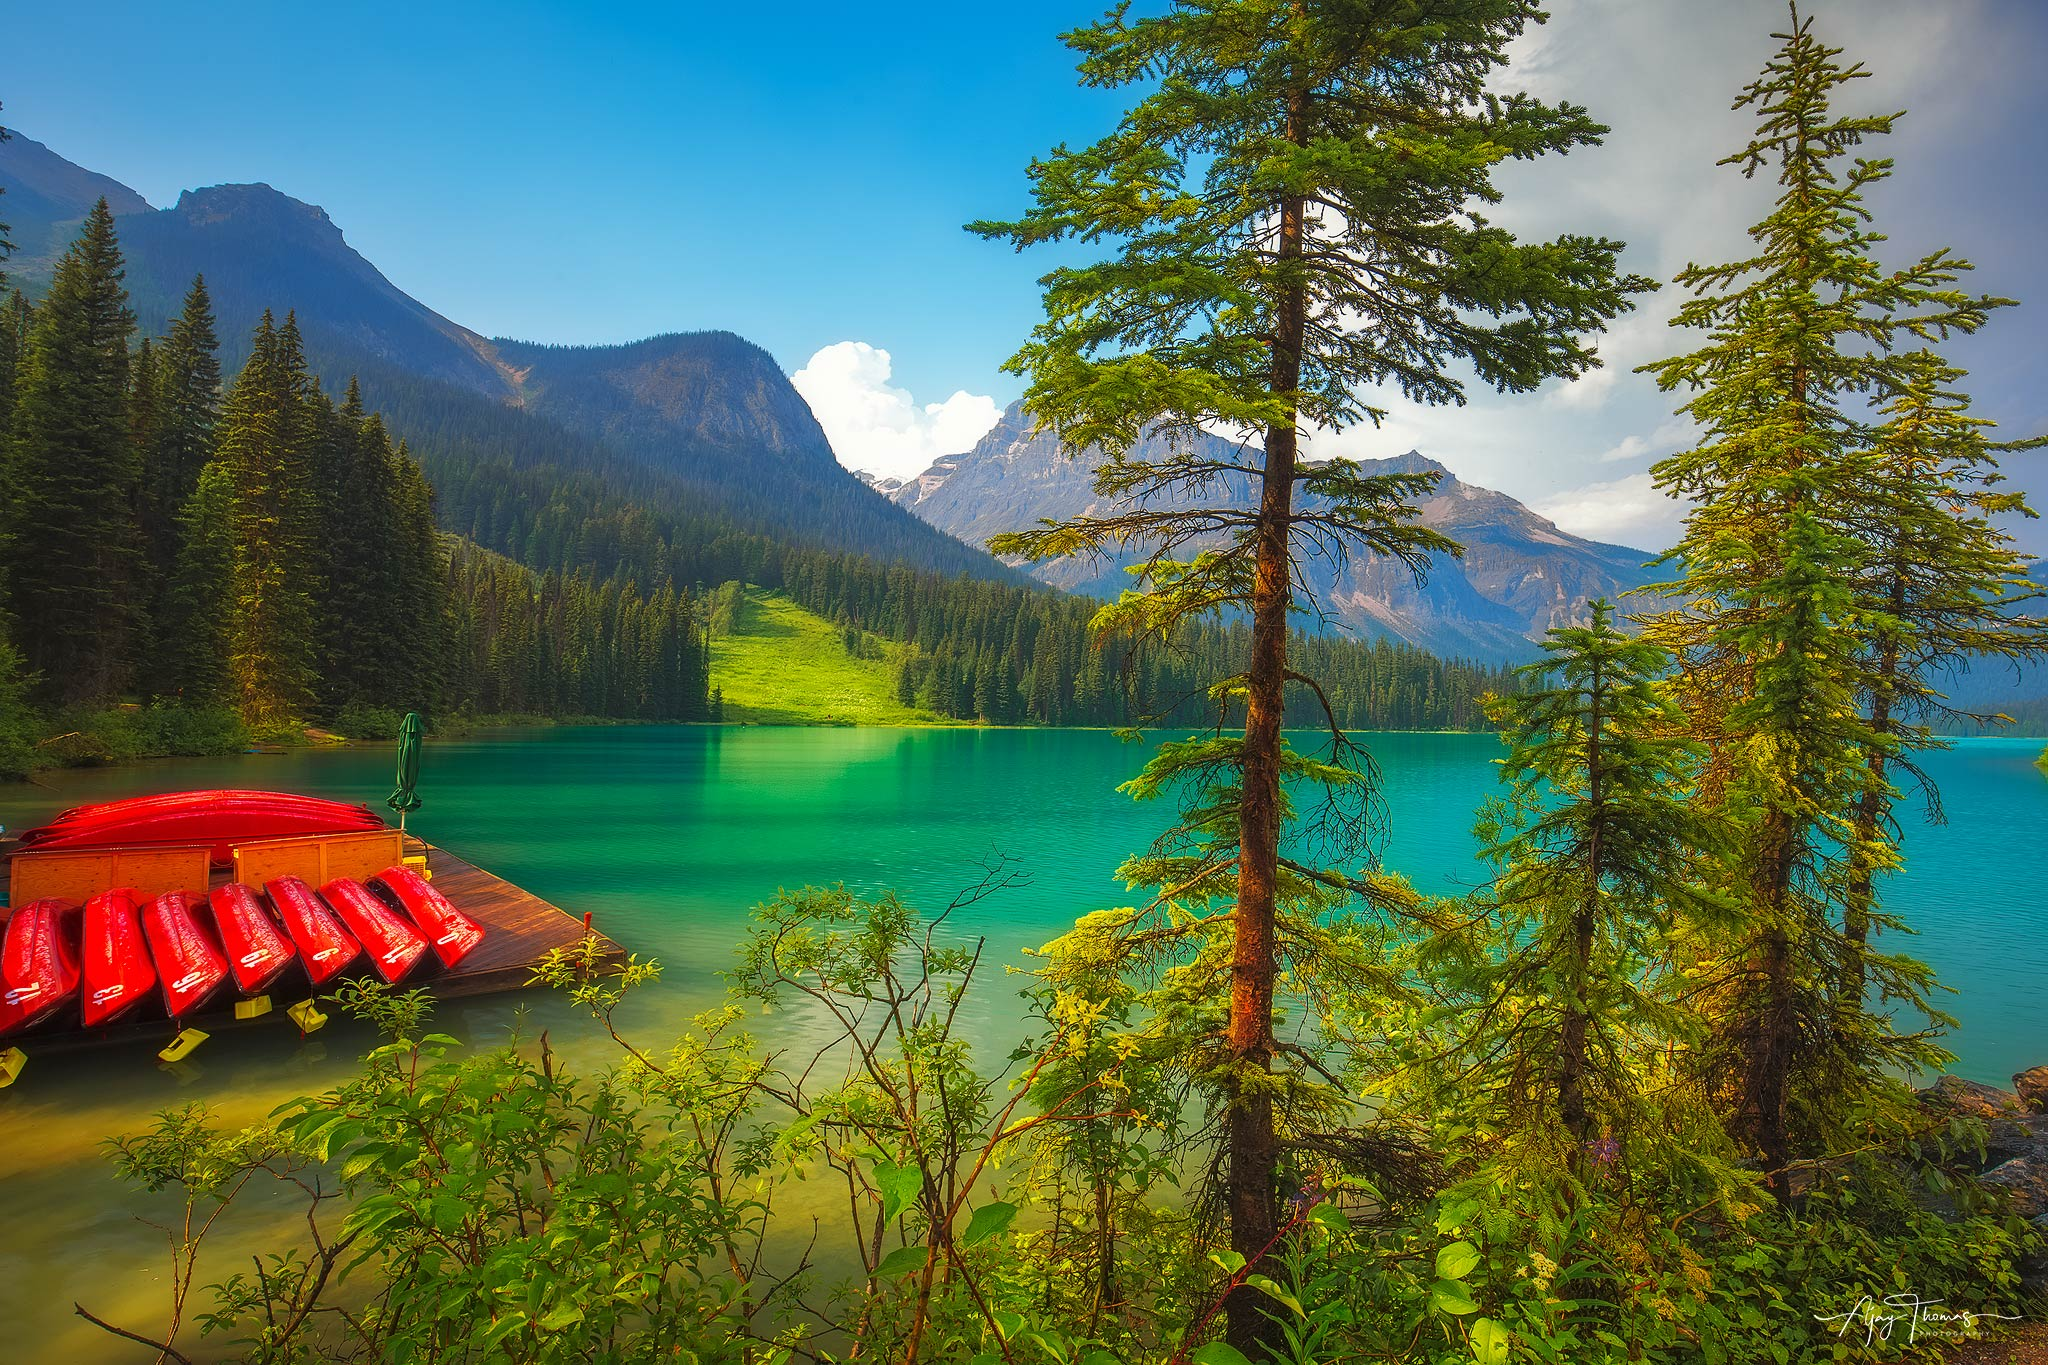 Emerald lake is a peaceful lake nestled in the mountains of Yoho National park, British Columbia,Canada   The lake is surrounded...